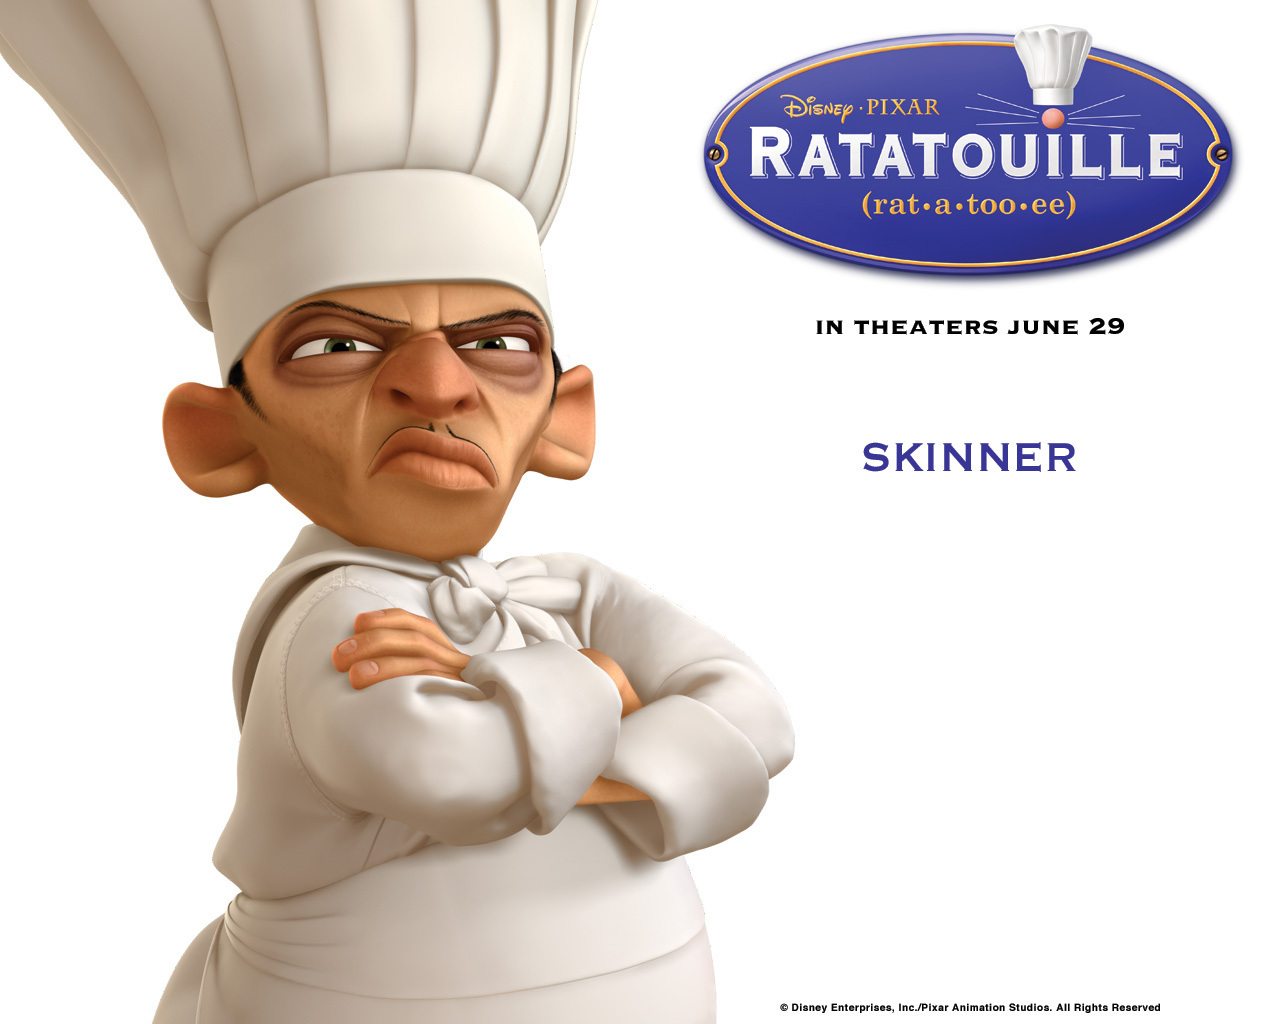 Skinner - Ratatouille Wallpaper (2791543) - Fanpop